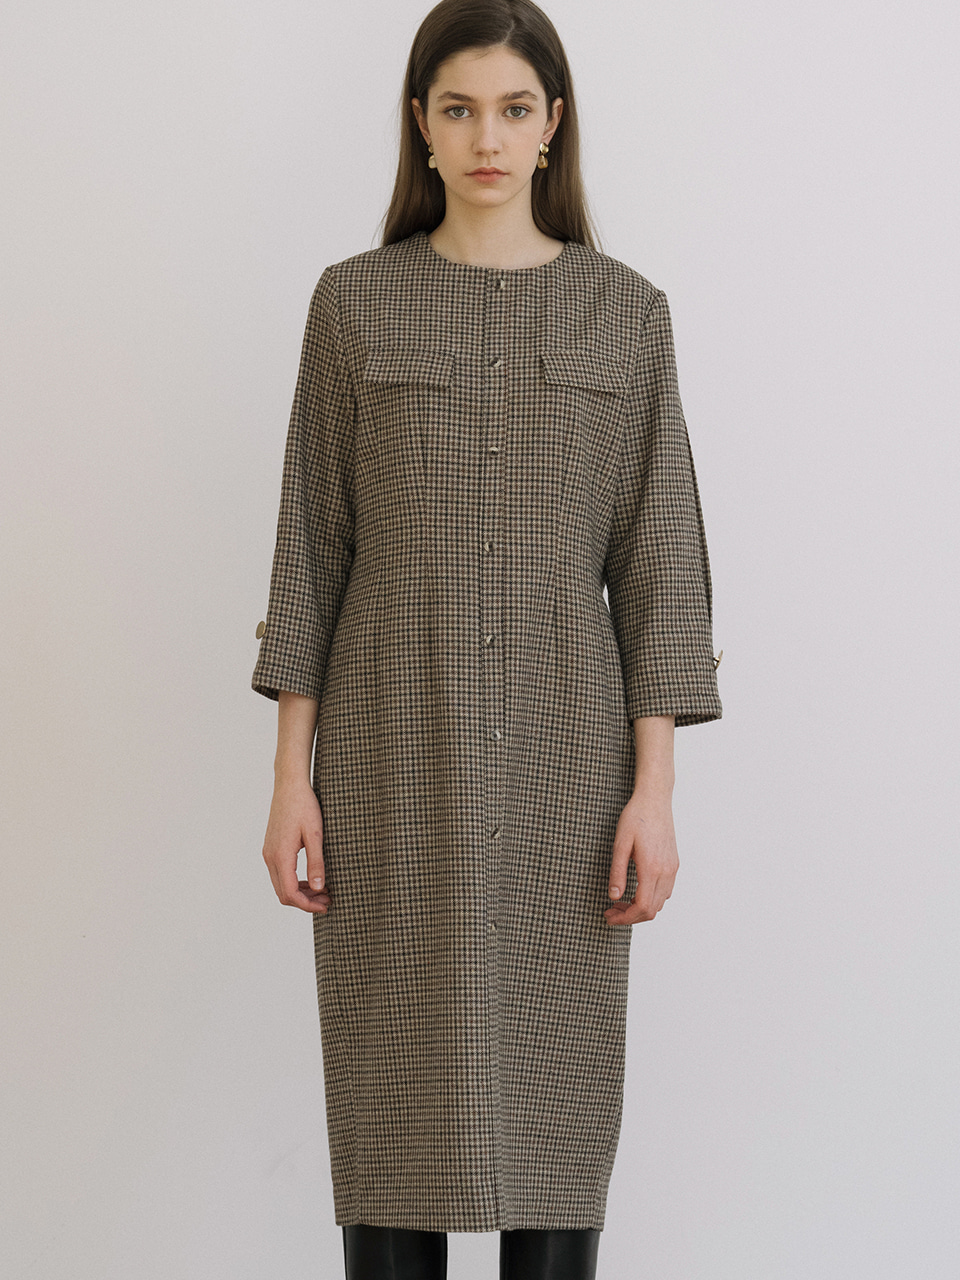 monts 1214 wool check dress